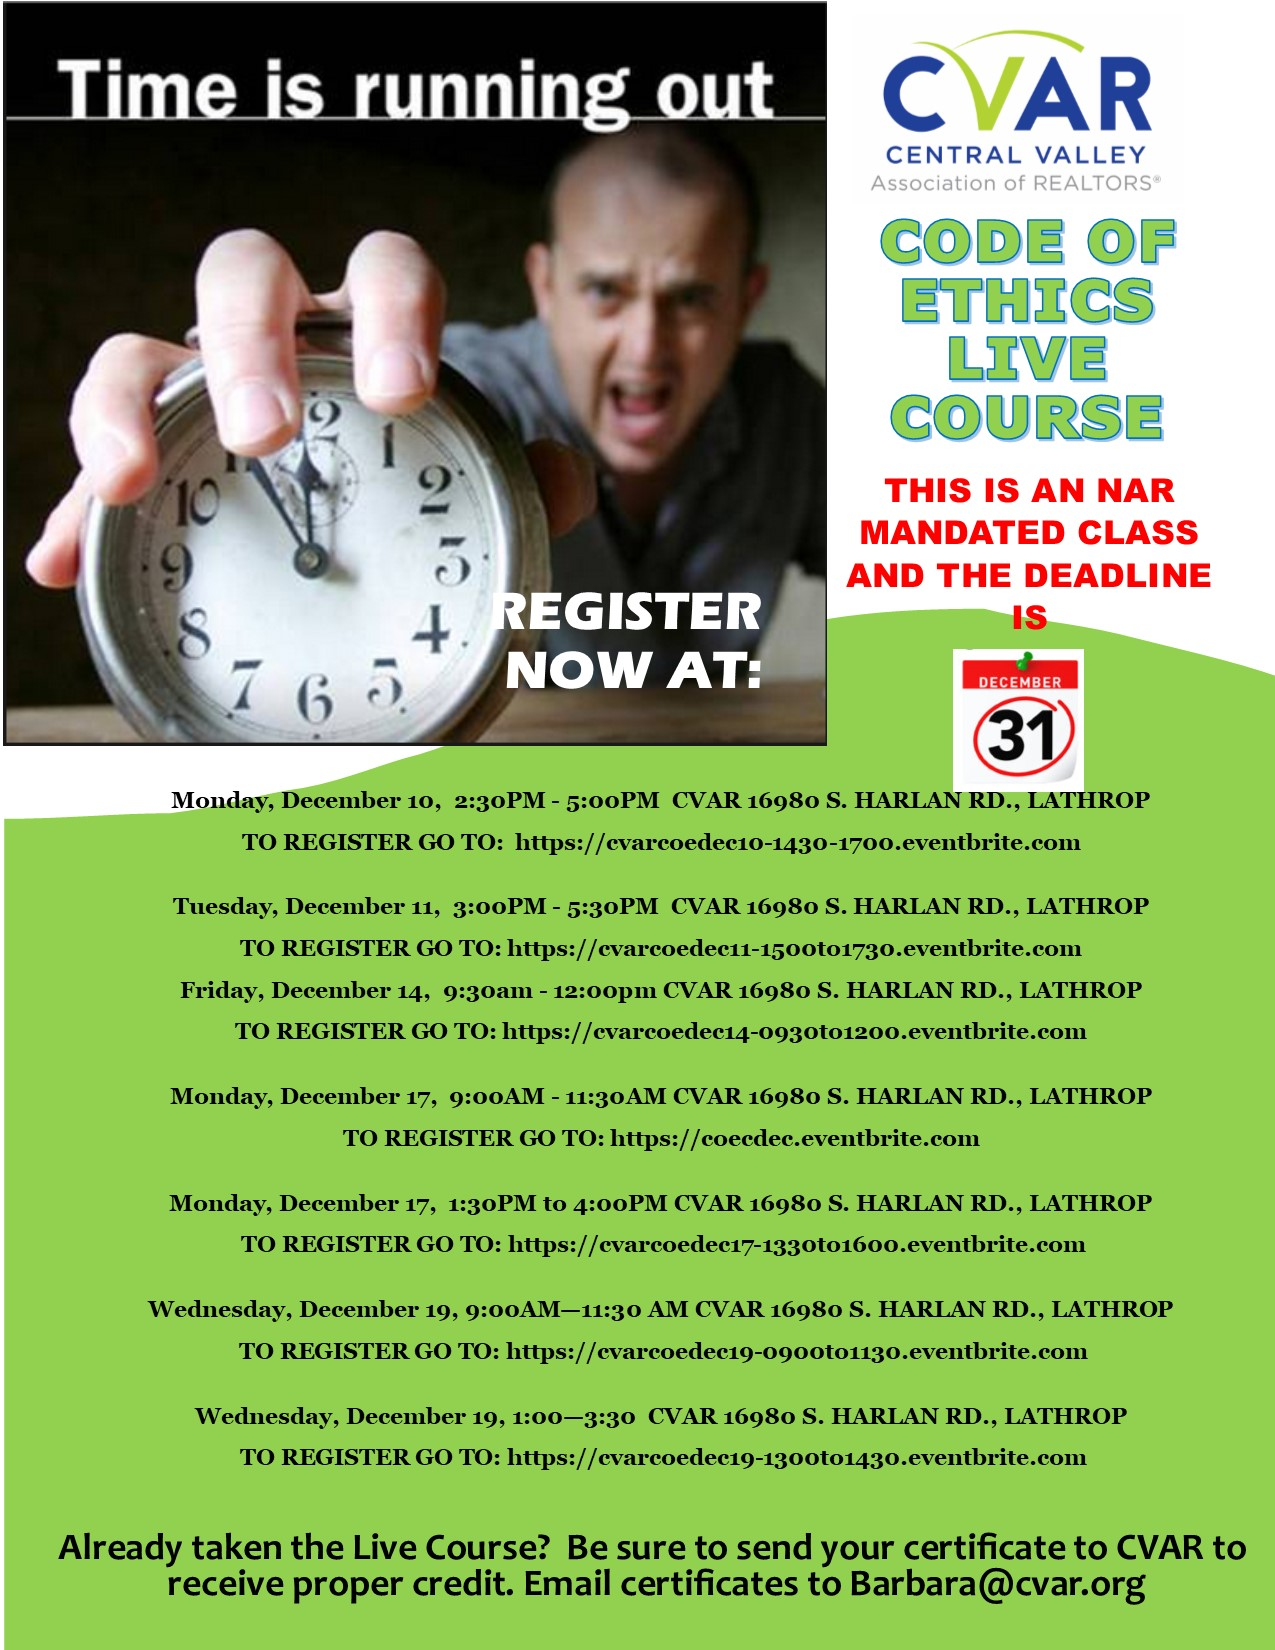 Code of Ethics Training PM Lathrop 1:30pm @ Central Valley Association of Realtors